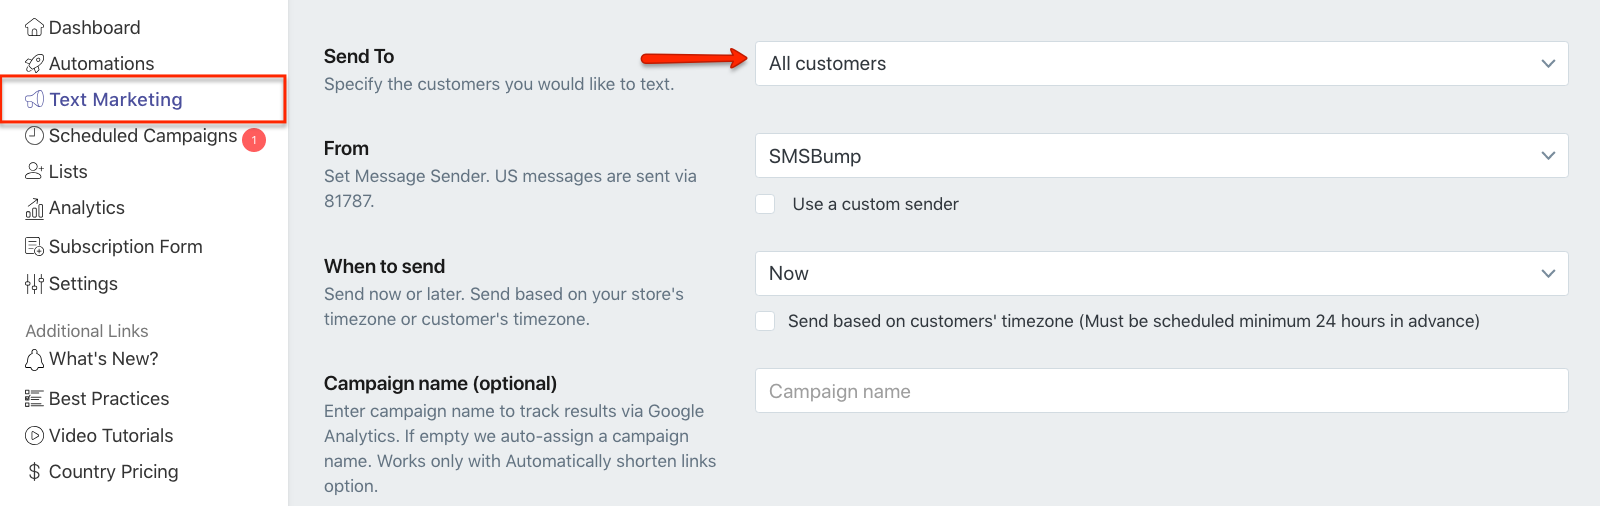 Send Text Marketing Campaign with Campaign Overview